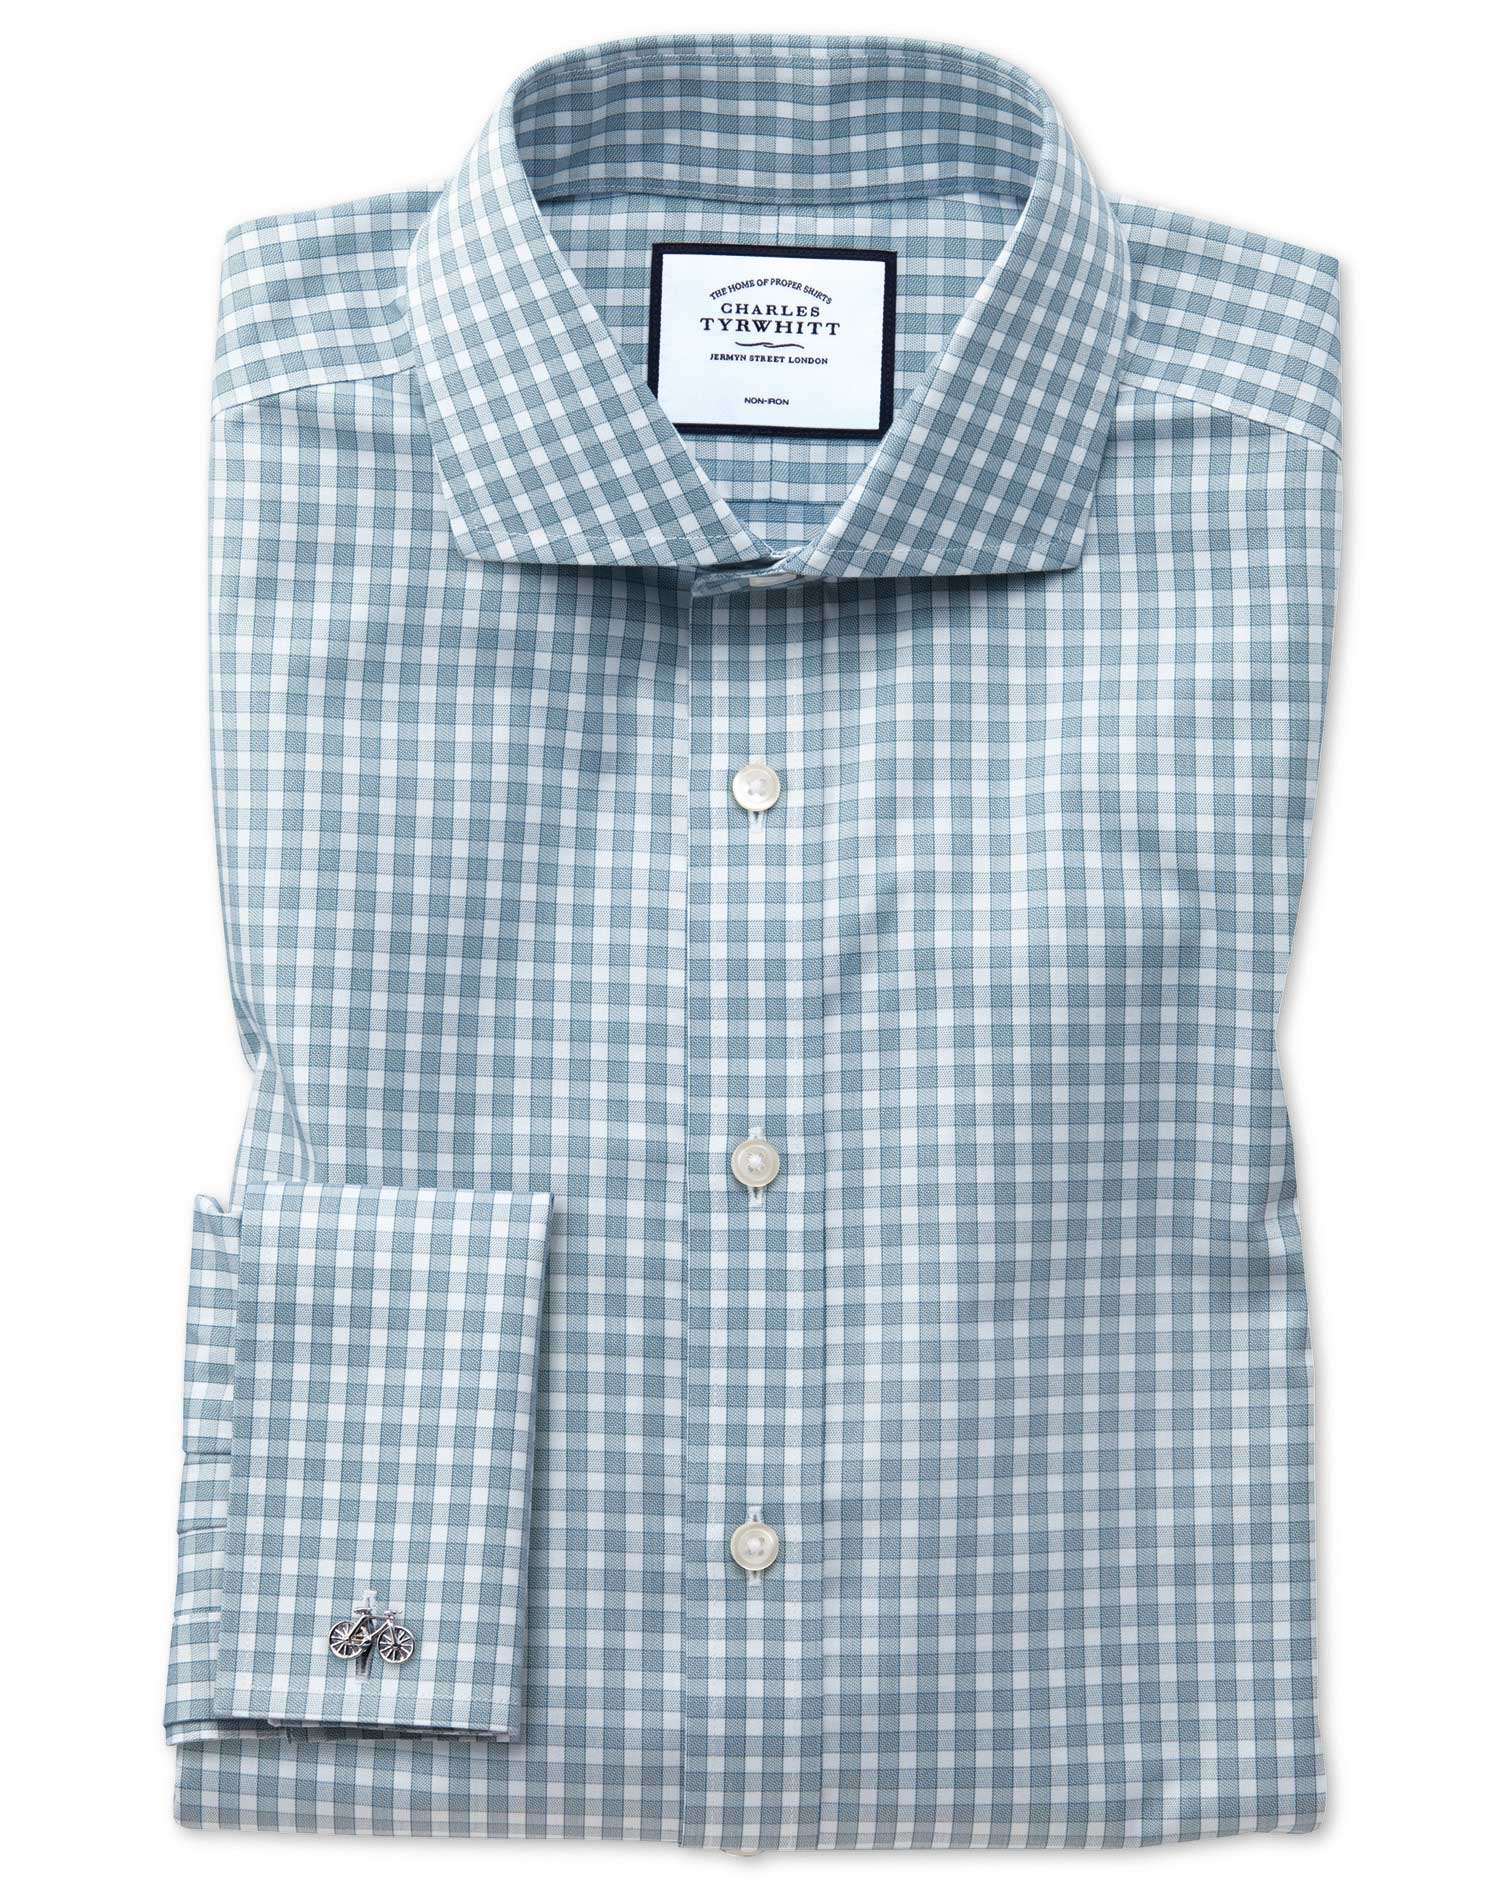 Slim Fit Non-Iron Twill Gingham Teal Cotton Formal Shirt Single Cuff Size 17.5/34 by Charles Tyrwhit